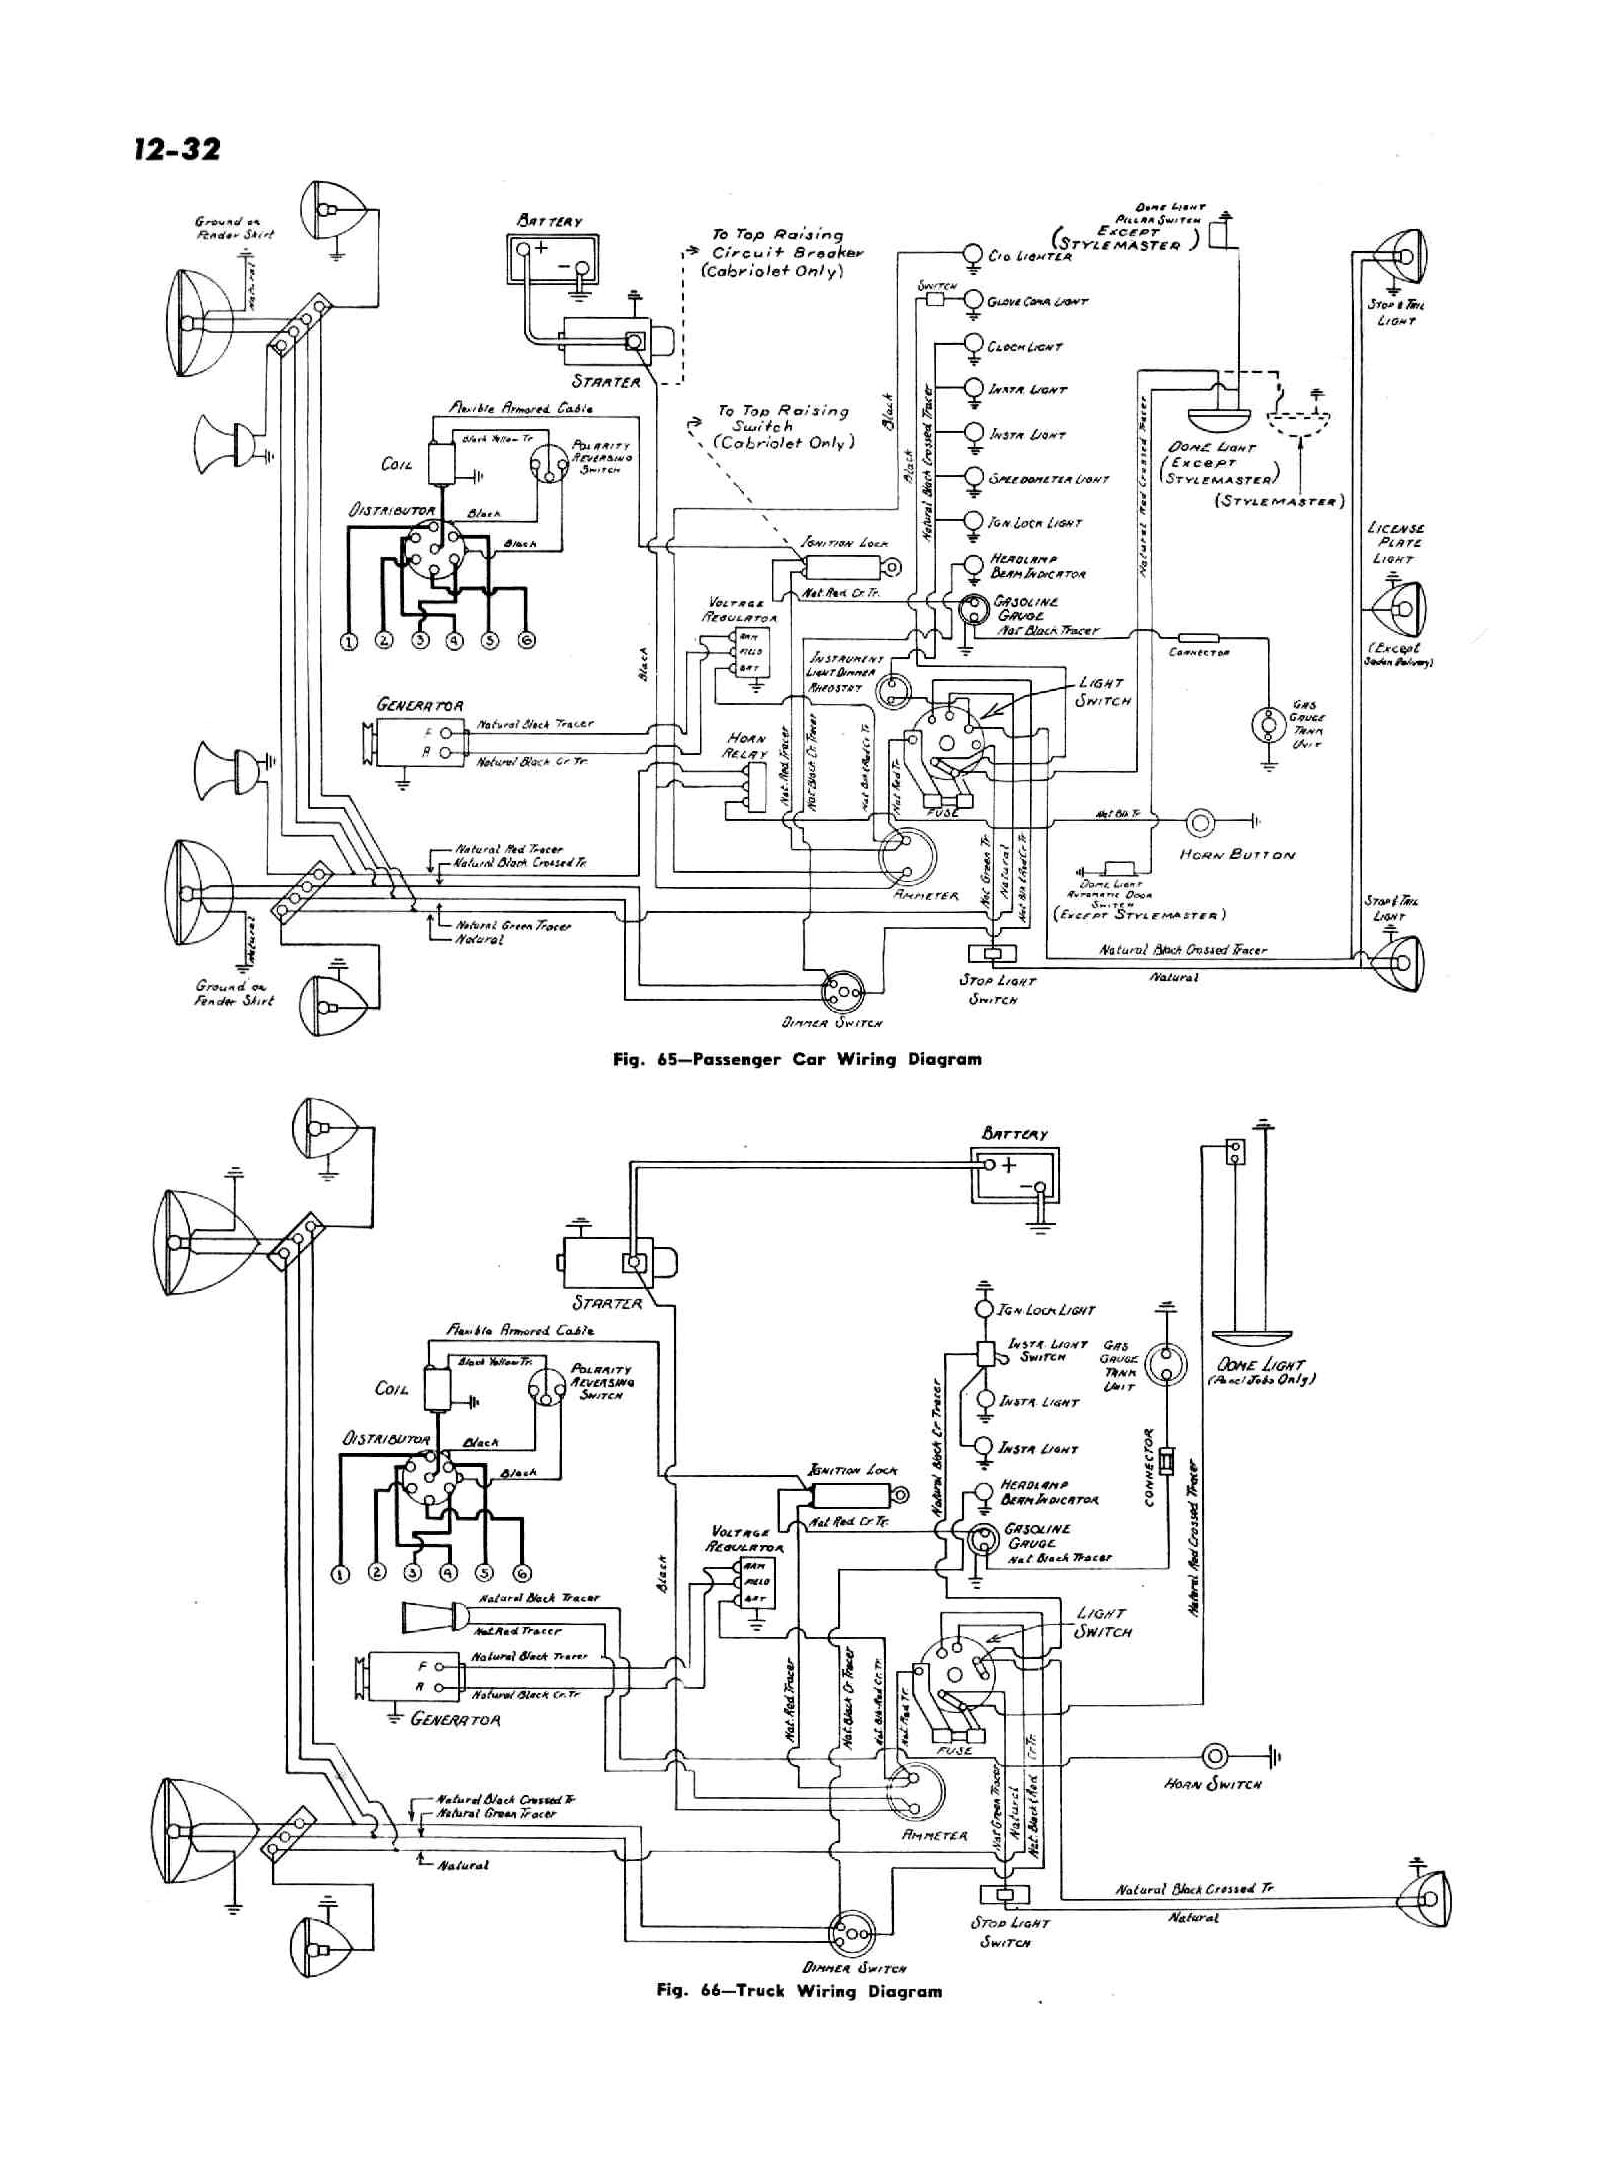 1960 Chevy Pickup Wiring Diagram Data 1966 Corvette Schematic Free For You U2022 1981 Engine